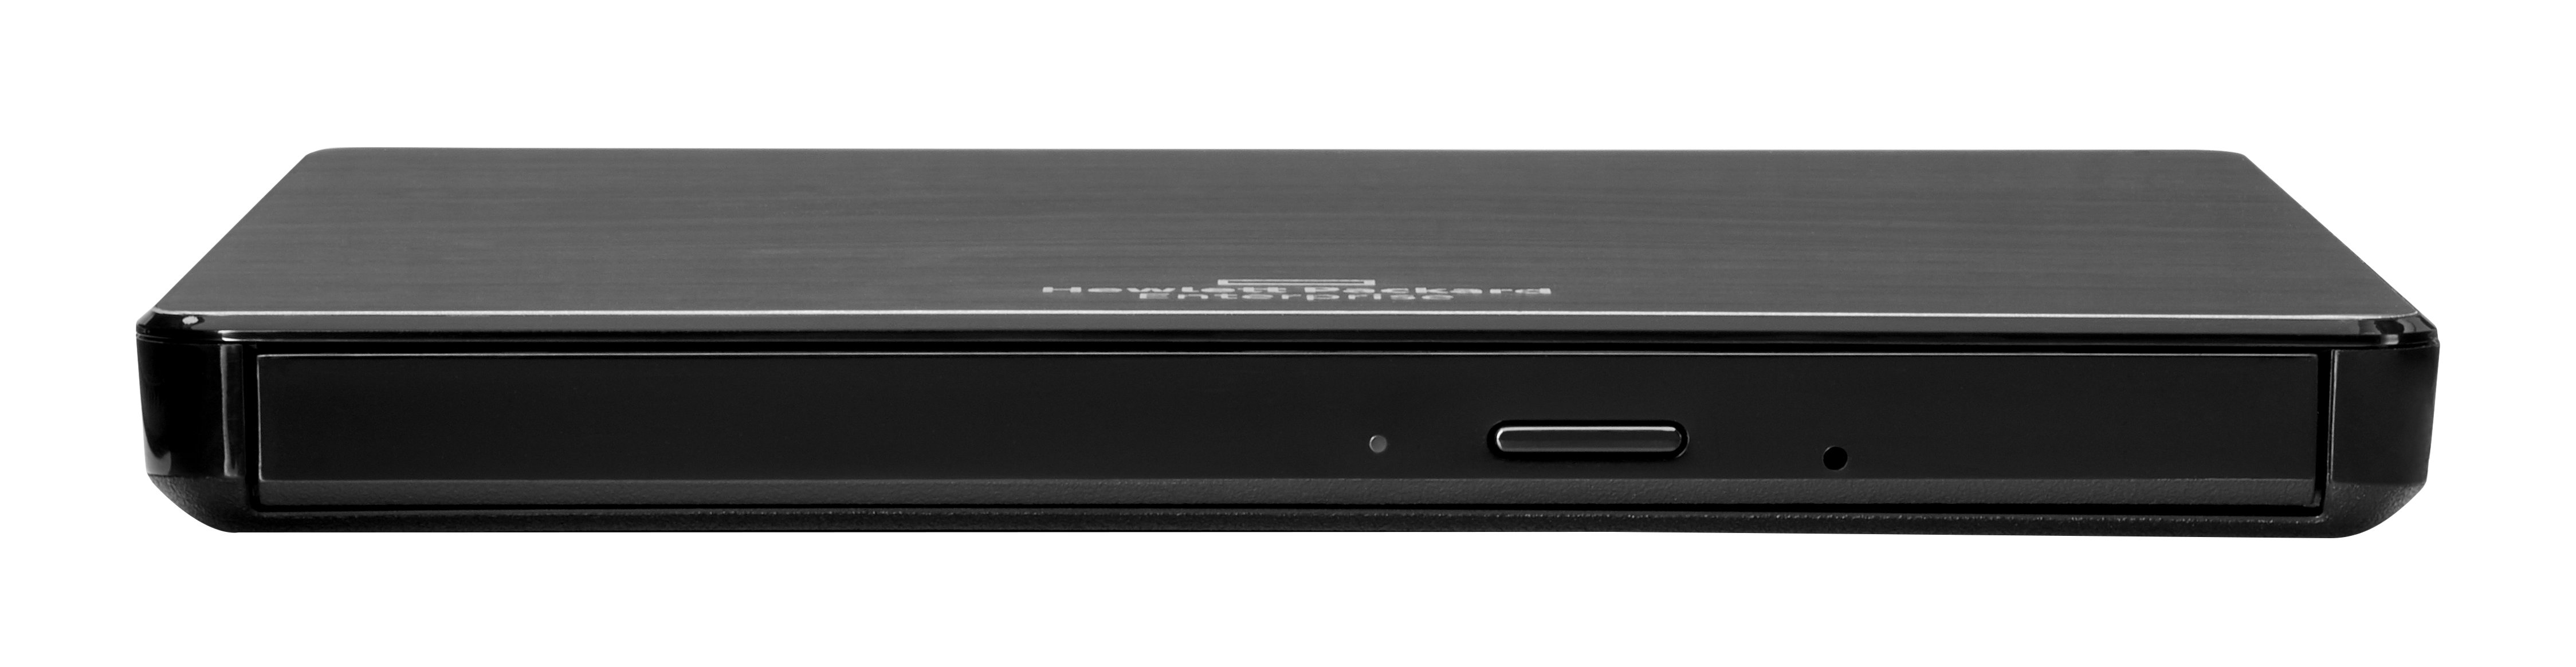 Hpe Mobile External Dvd Drive 701498 B21 Cd Blu Ray M Tech Rw Typical Customers Are Those Who